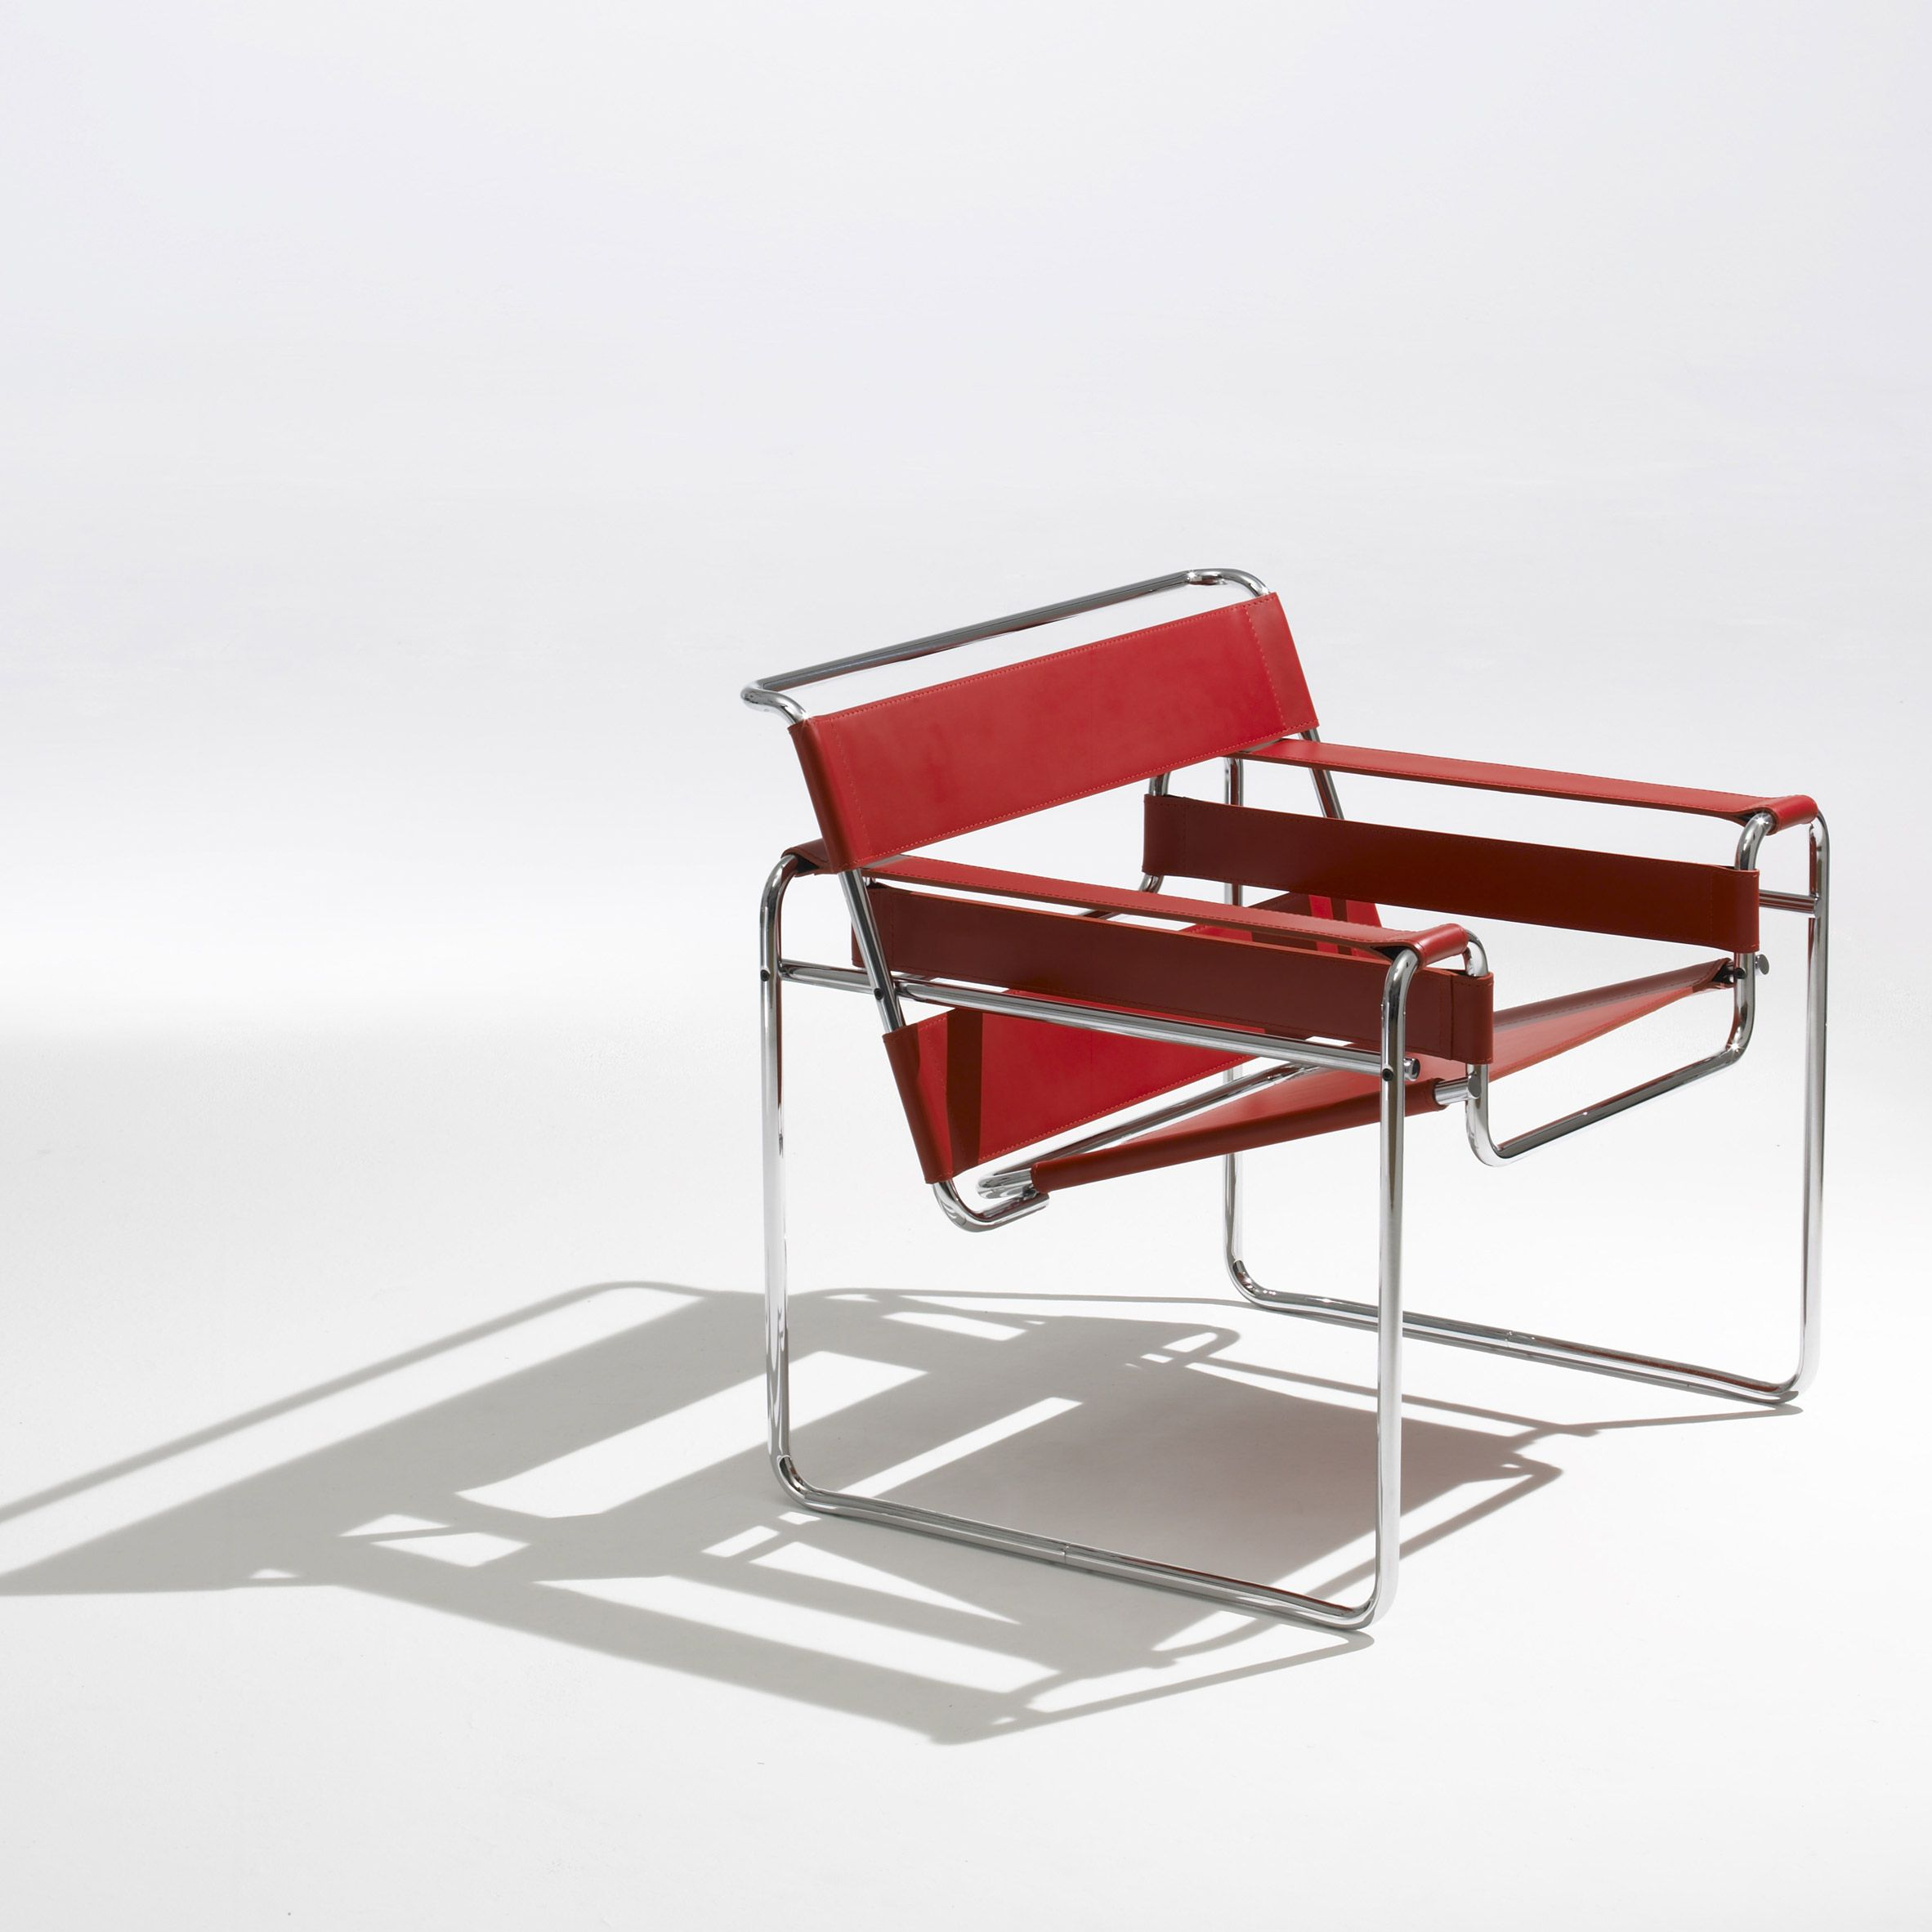 10 of the most iconic pieces of Bauhaus furniture